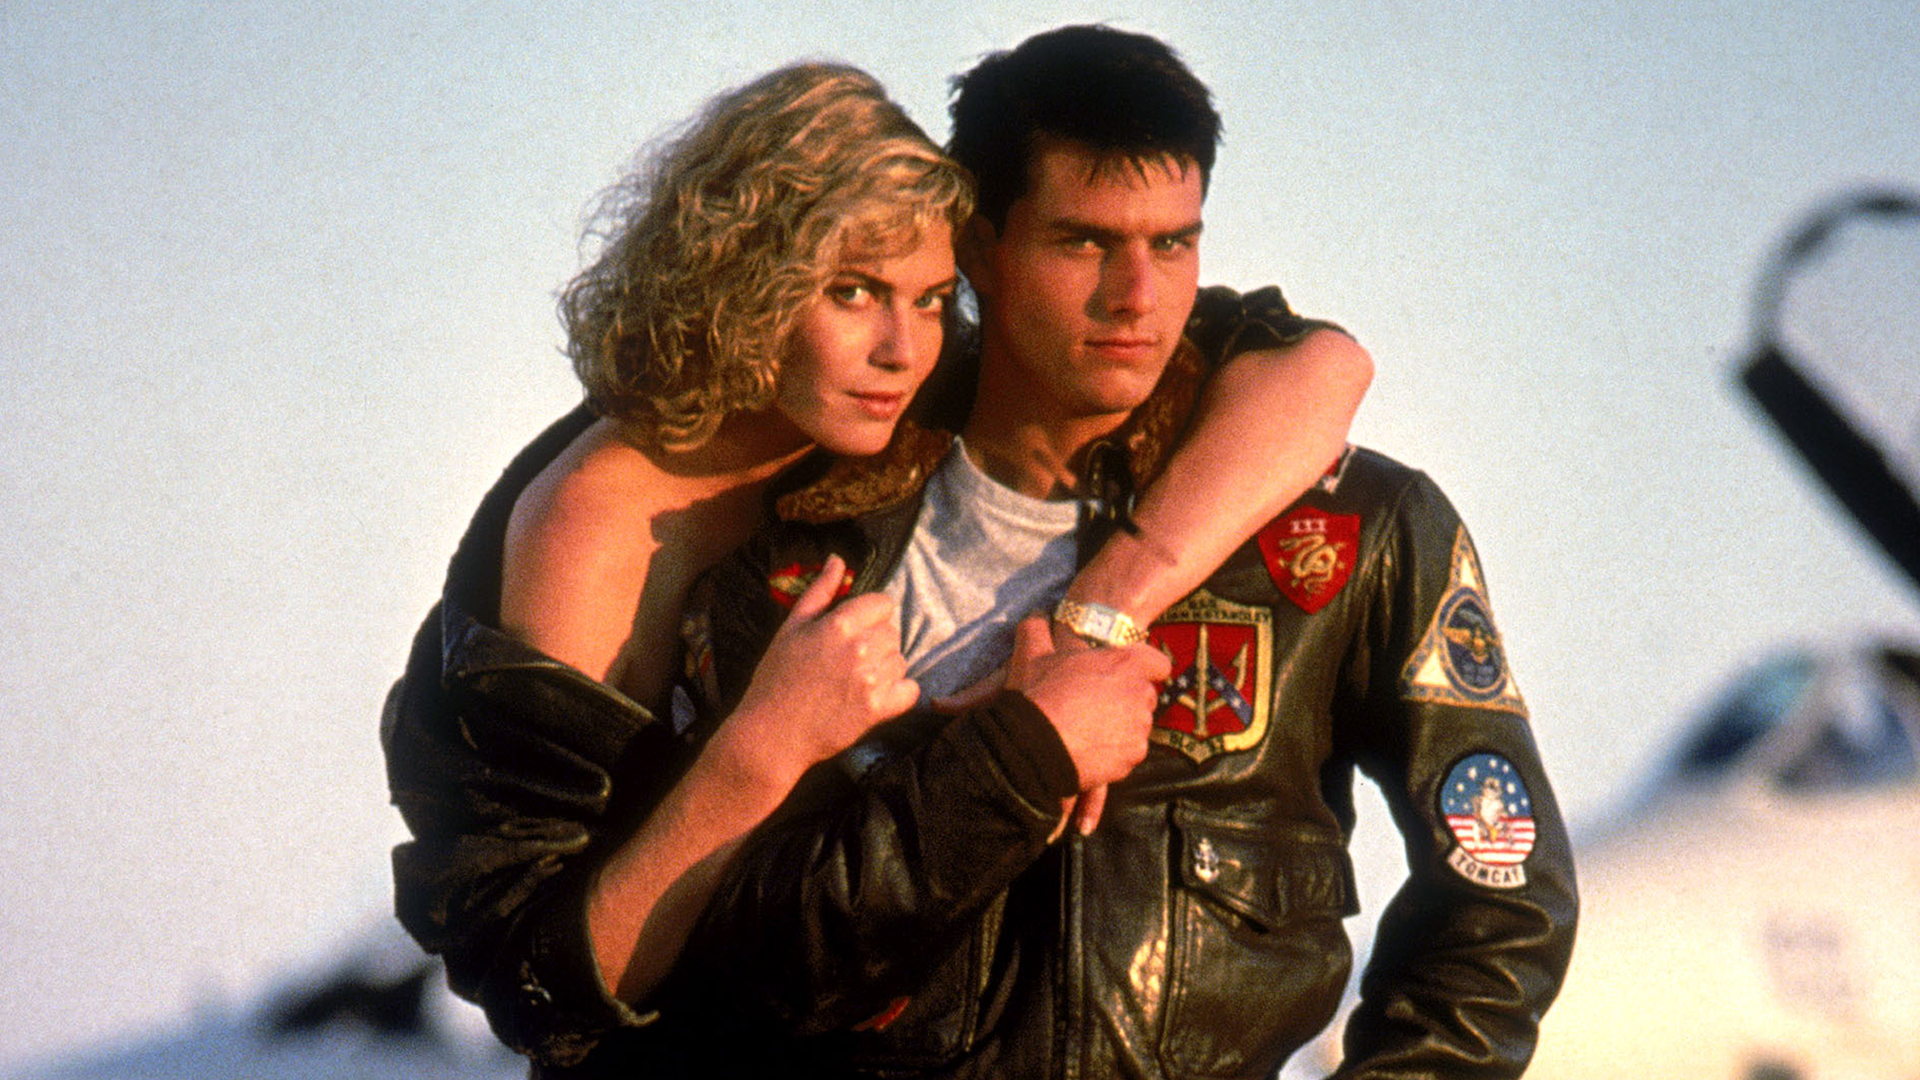 TOP GUN, Kelly McGillis, Tom Cruise, 1986, (c) Paramount/courtesy Everett Collection